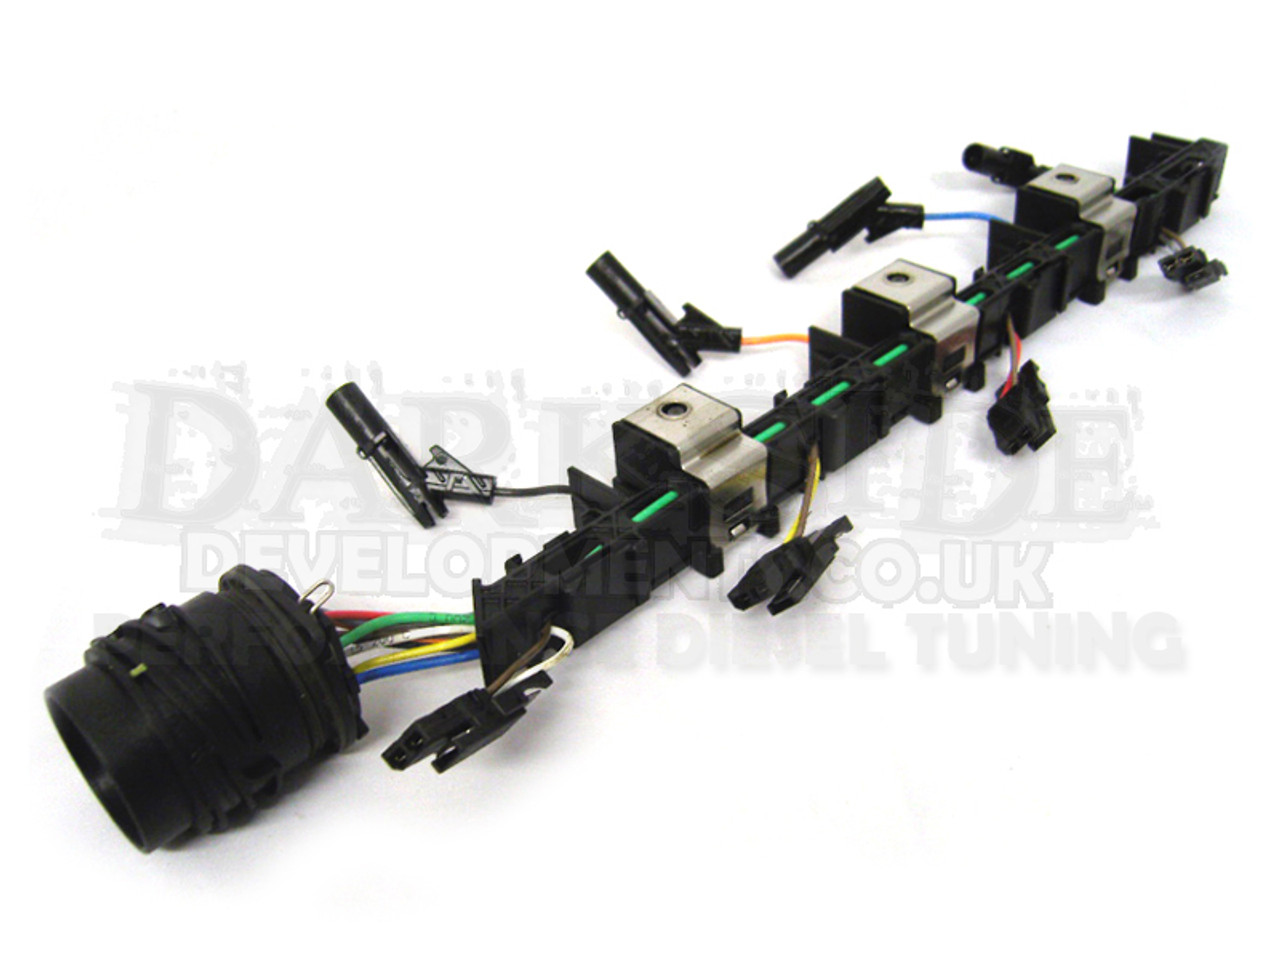 Genuine Vw Injector Wiring Loom For Vw 2 0 16v Tdi Pd